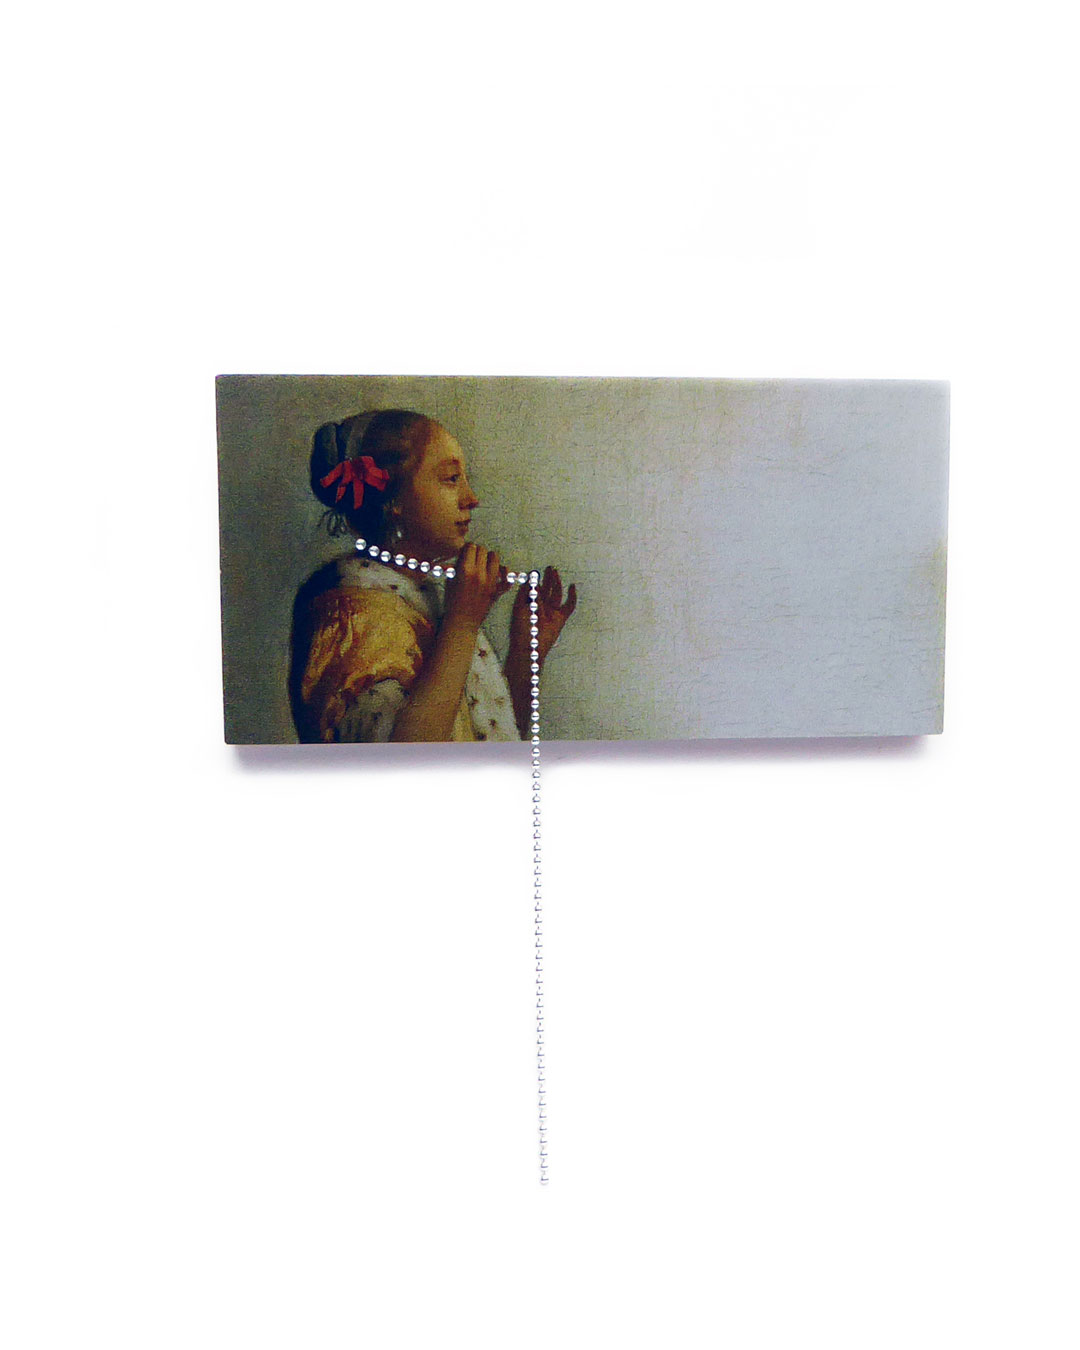 Herman Hermsen, Girl with an Amazing Long Necklace, 2018, brooch; print on aluminium, wood, silver, 87 x 80 x 13 mm, €300